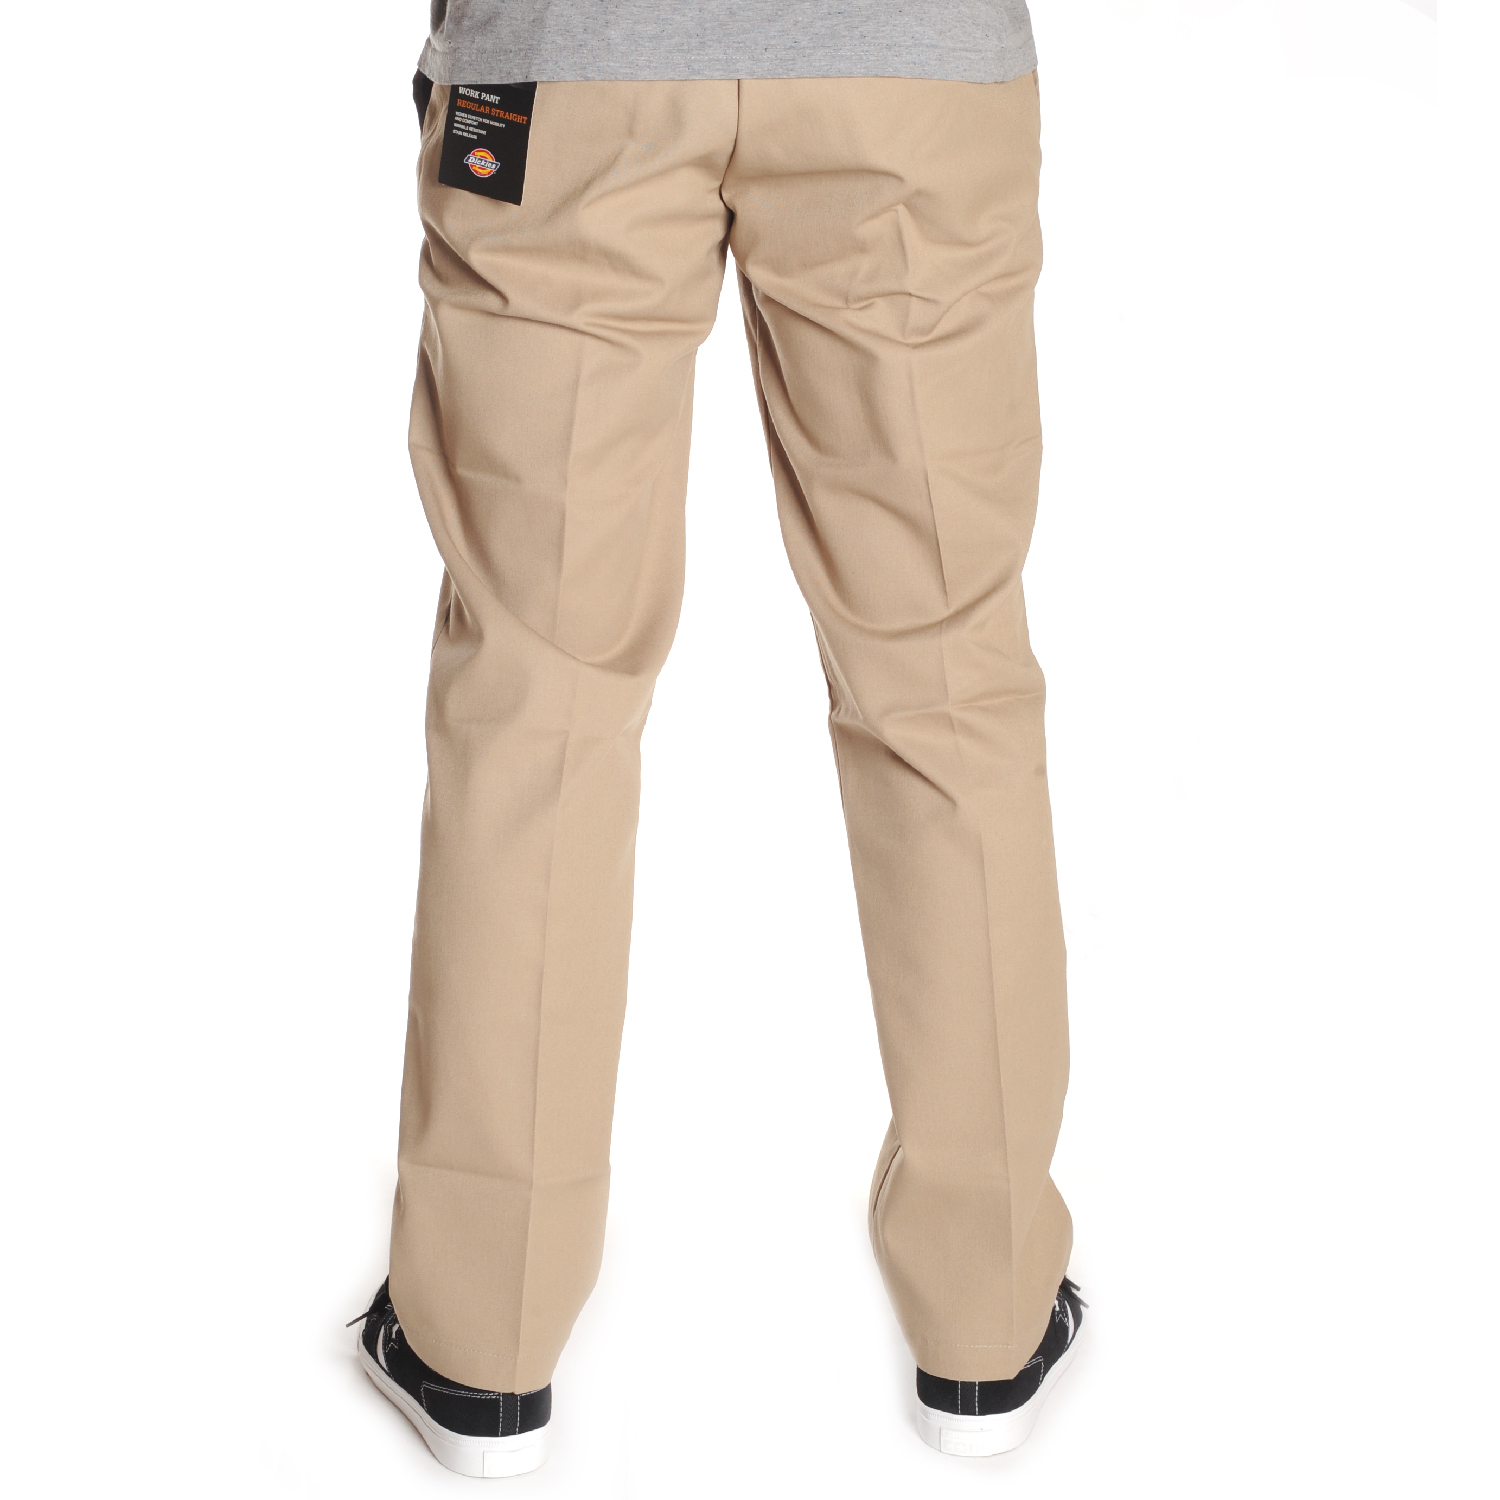 Desert Sand Pants Dickies /'67 Collection WP818 Industrial Work